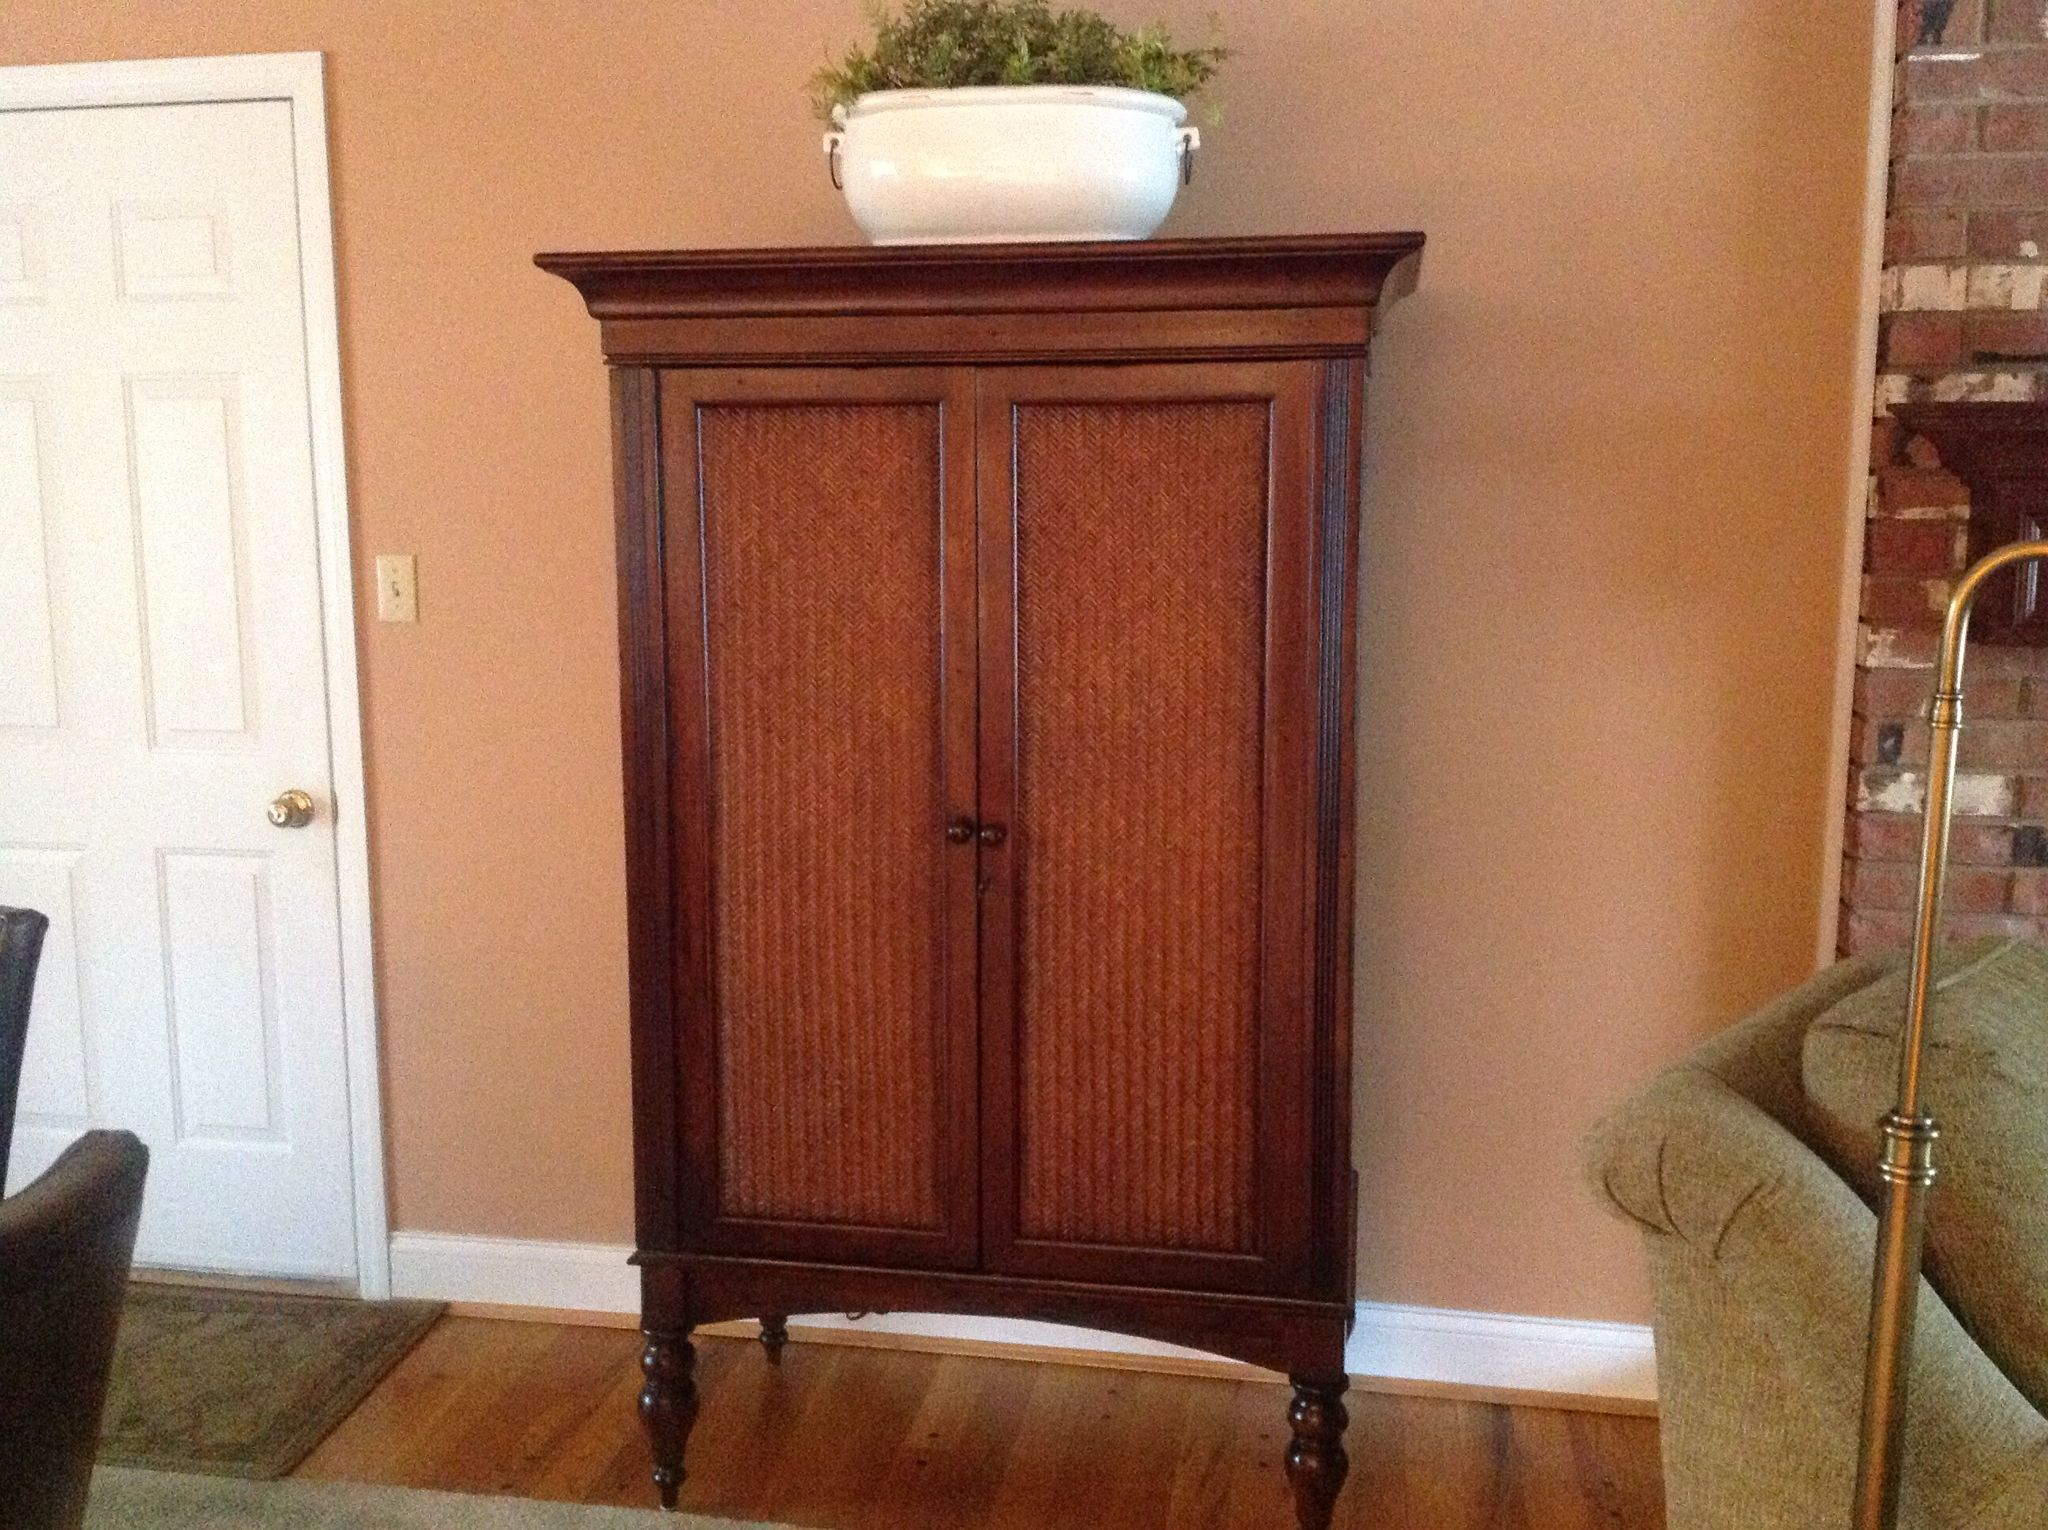 Bar Cabinet 3ft 2in Wide X 5ft 8in Tall 1ft 9 In Deep